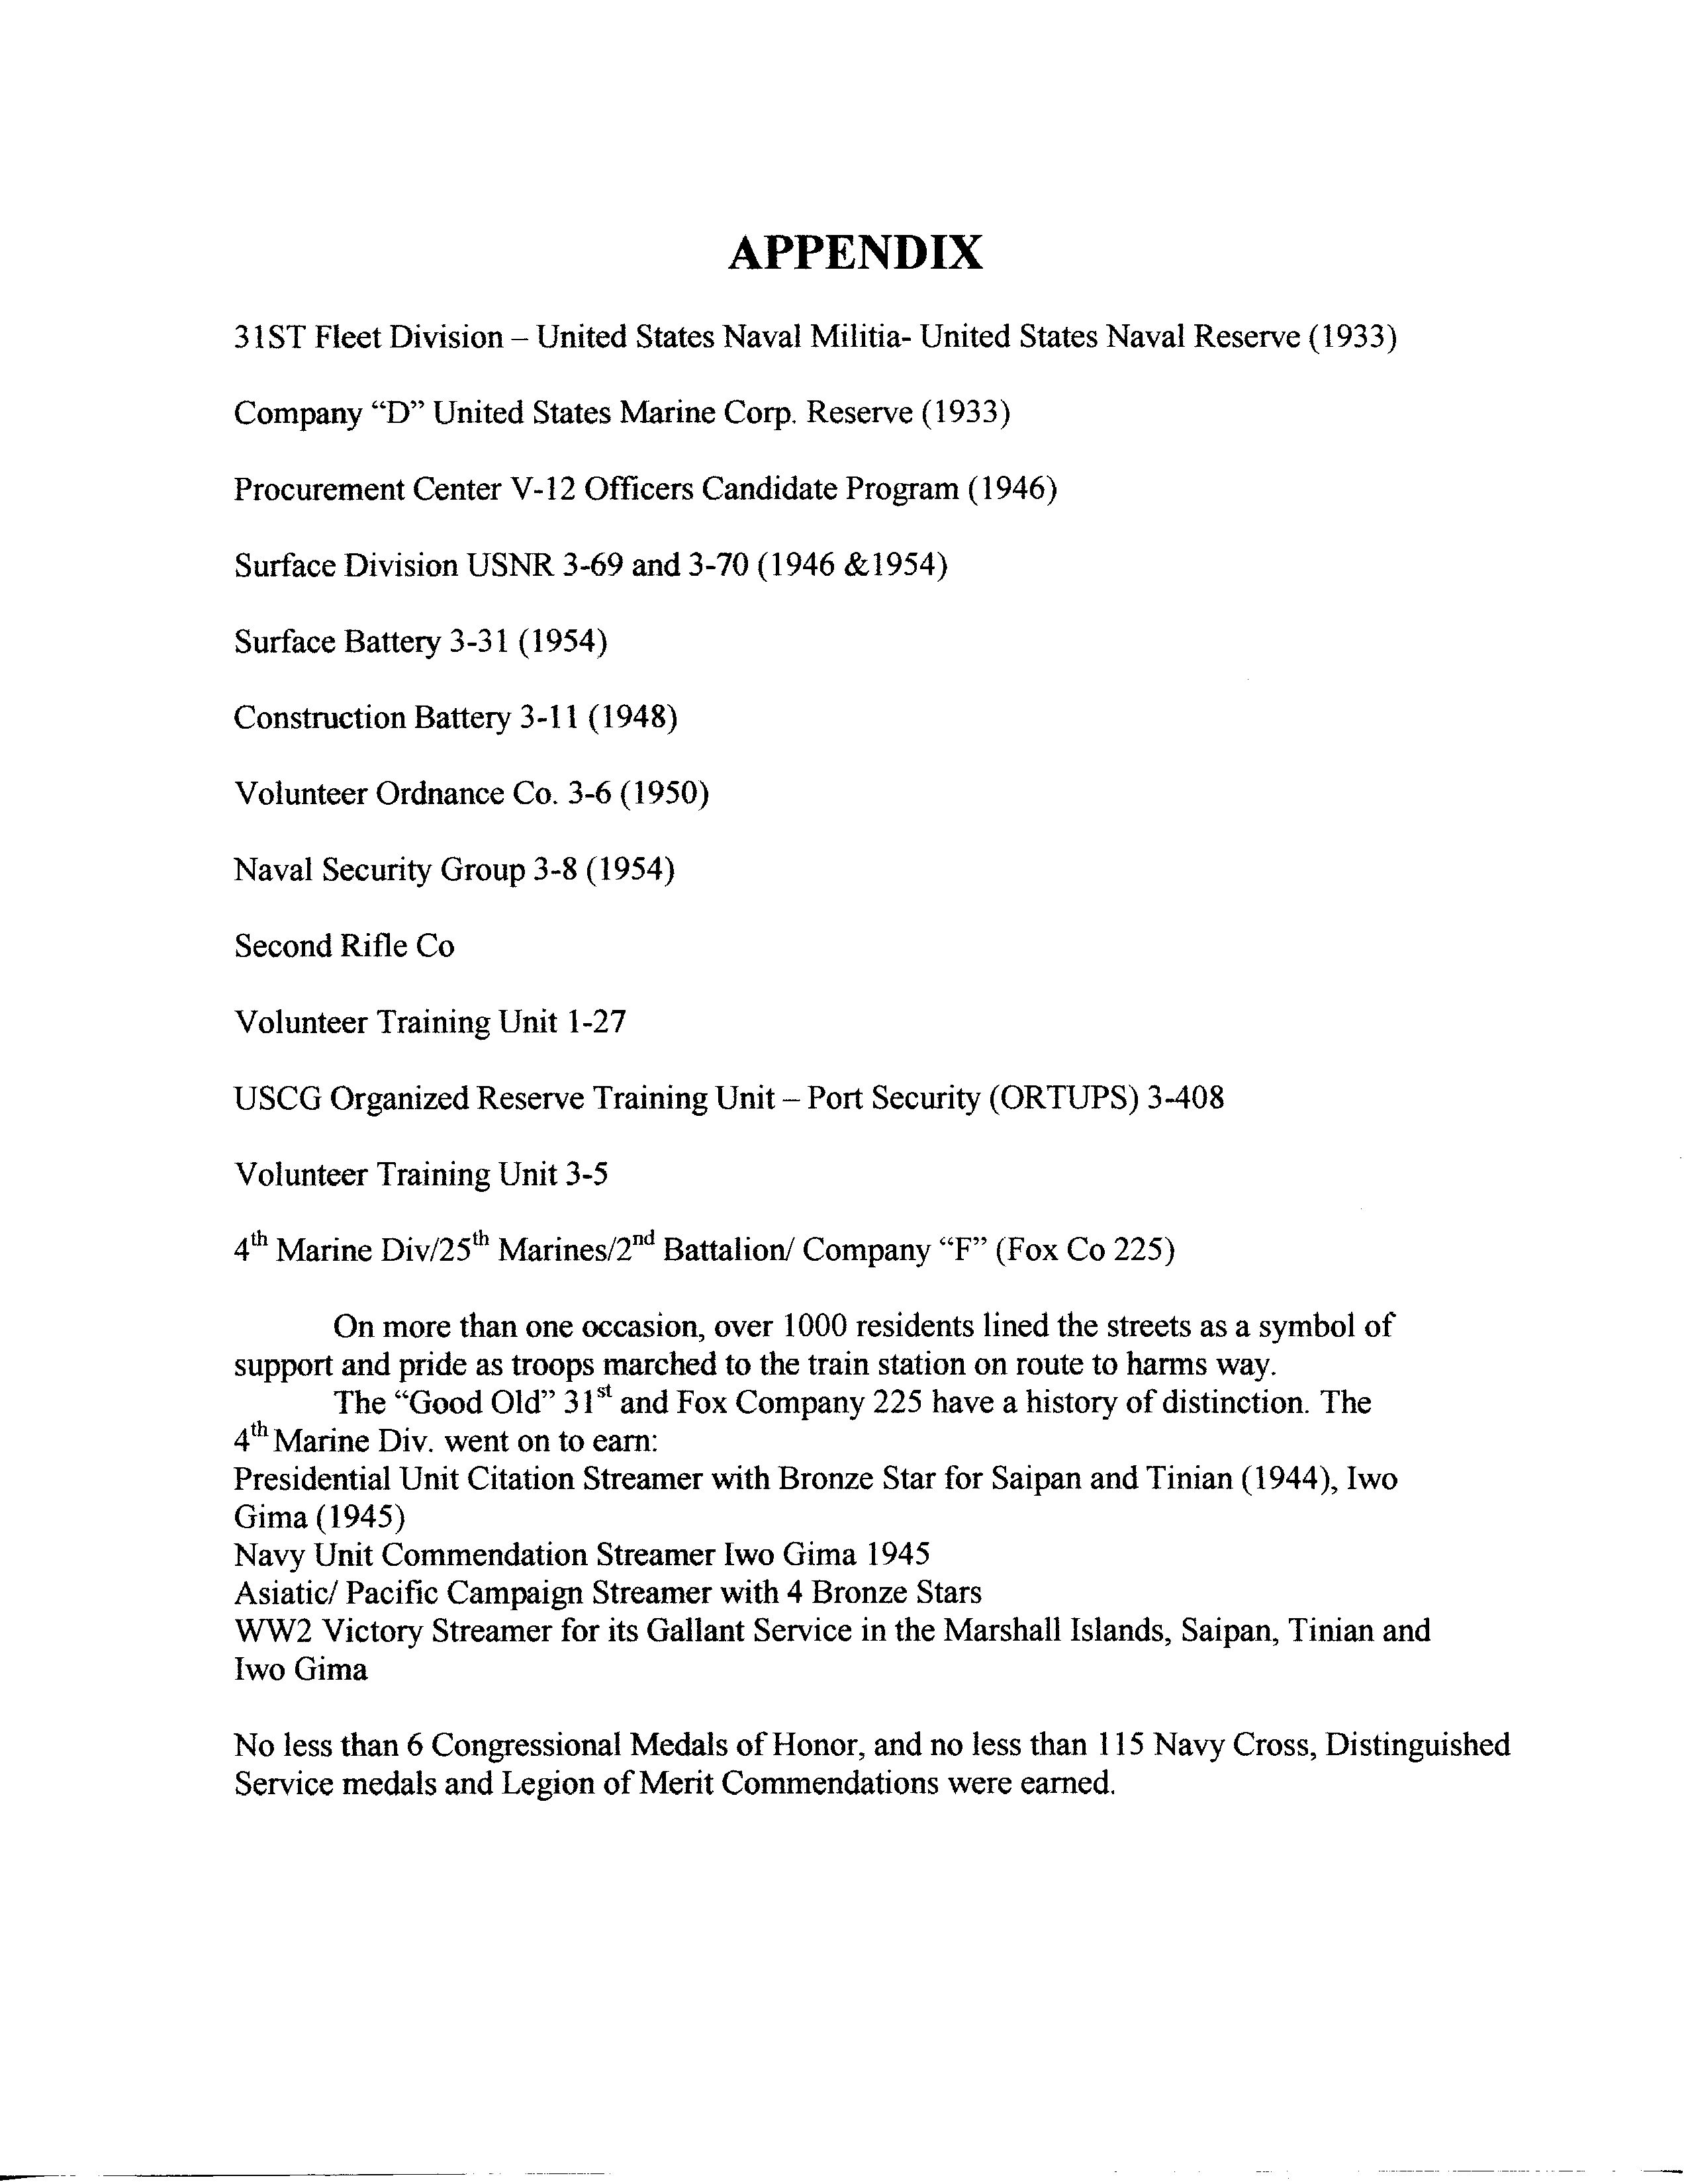 008 Njhs Essay Help Example National Junior Honor Society Cove Examples Amazing Character Full